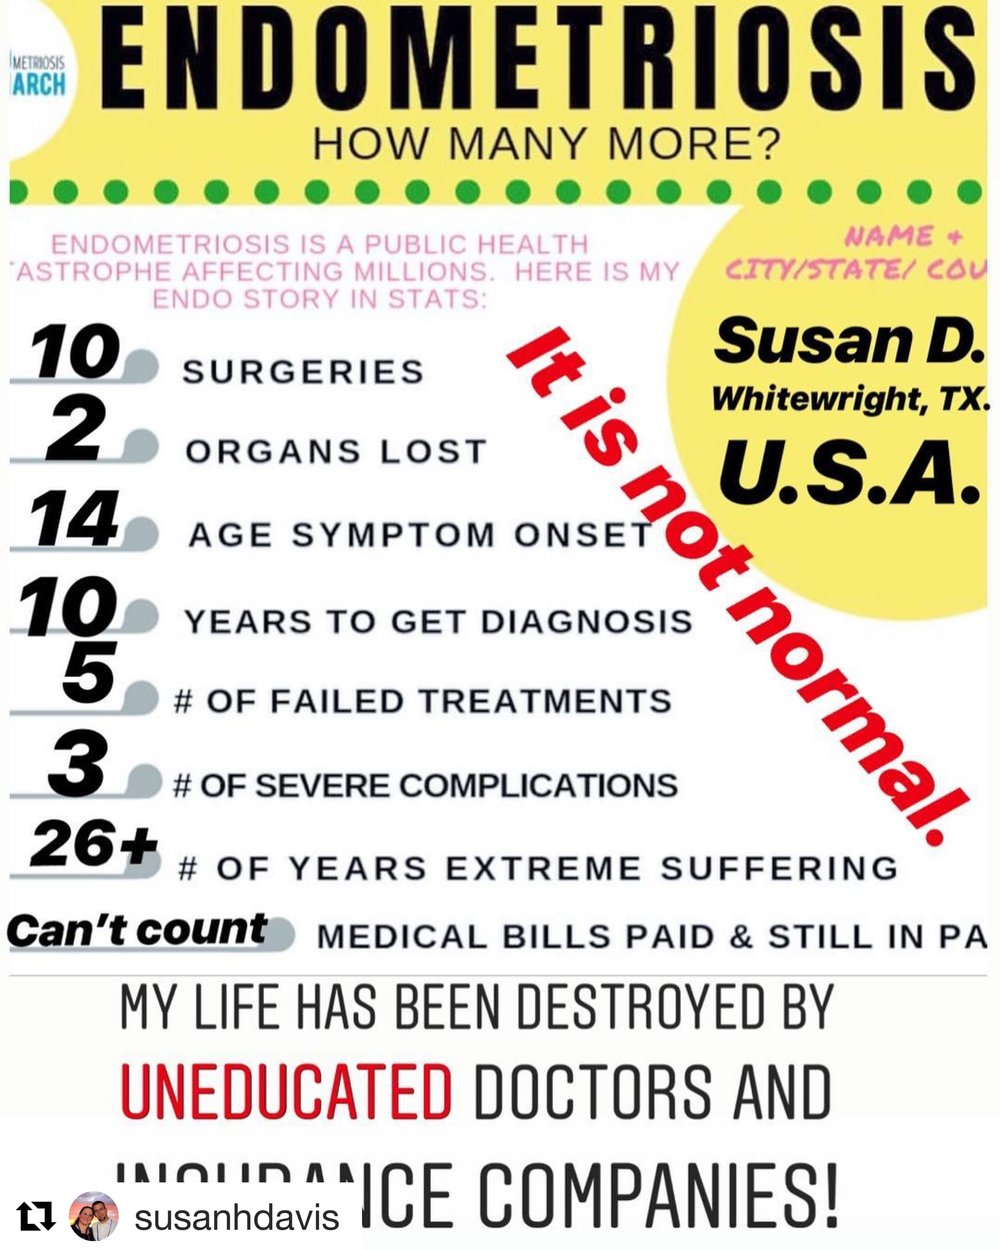 endo story in stats susan d texas.JPG